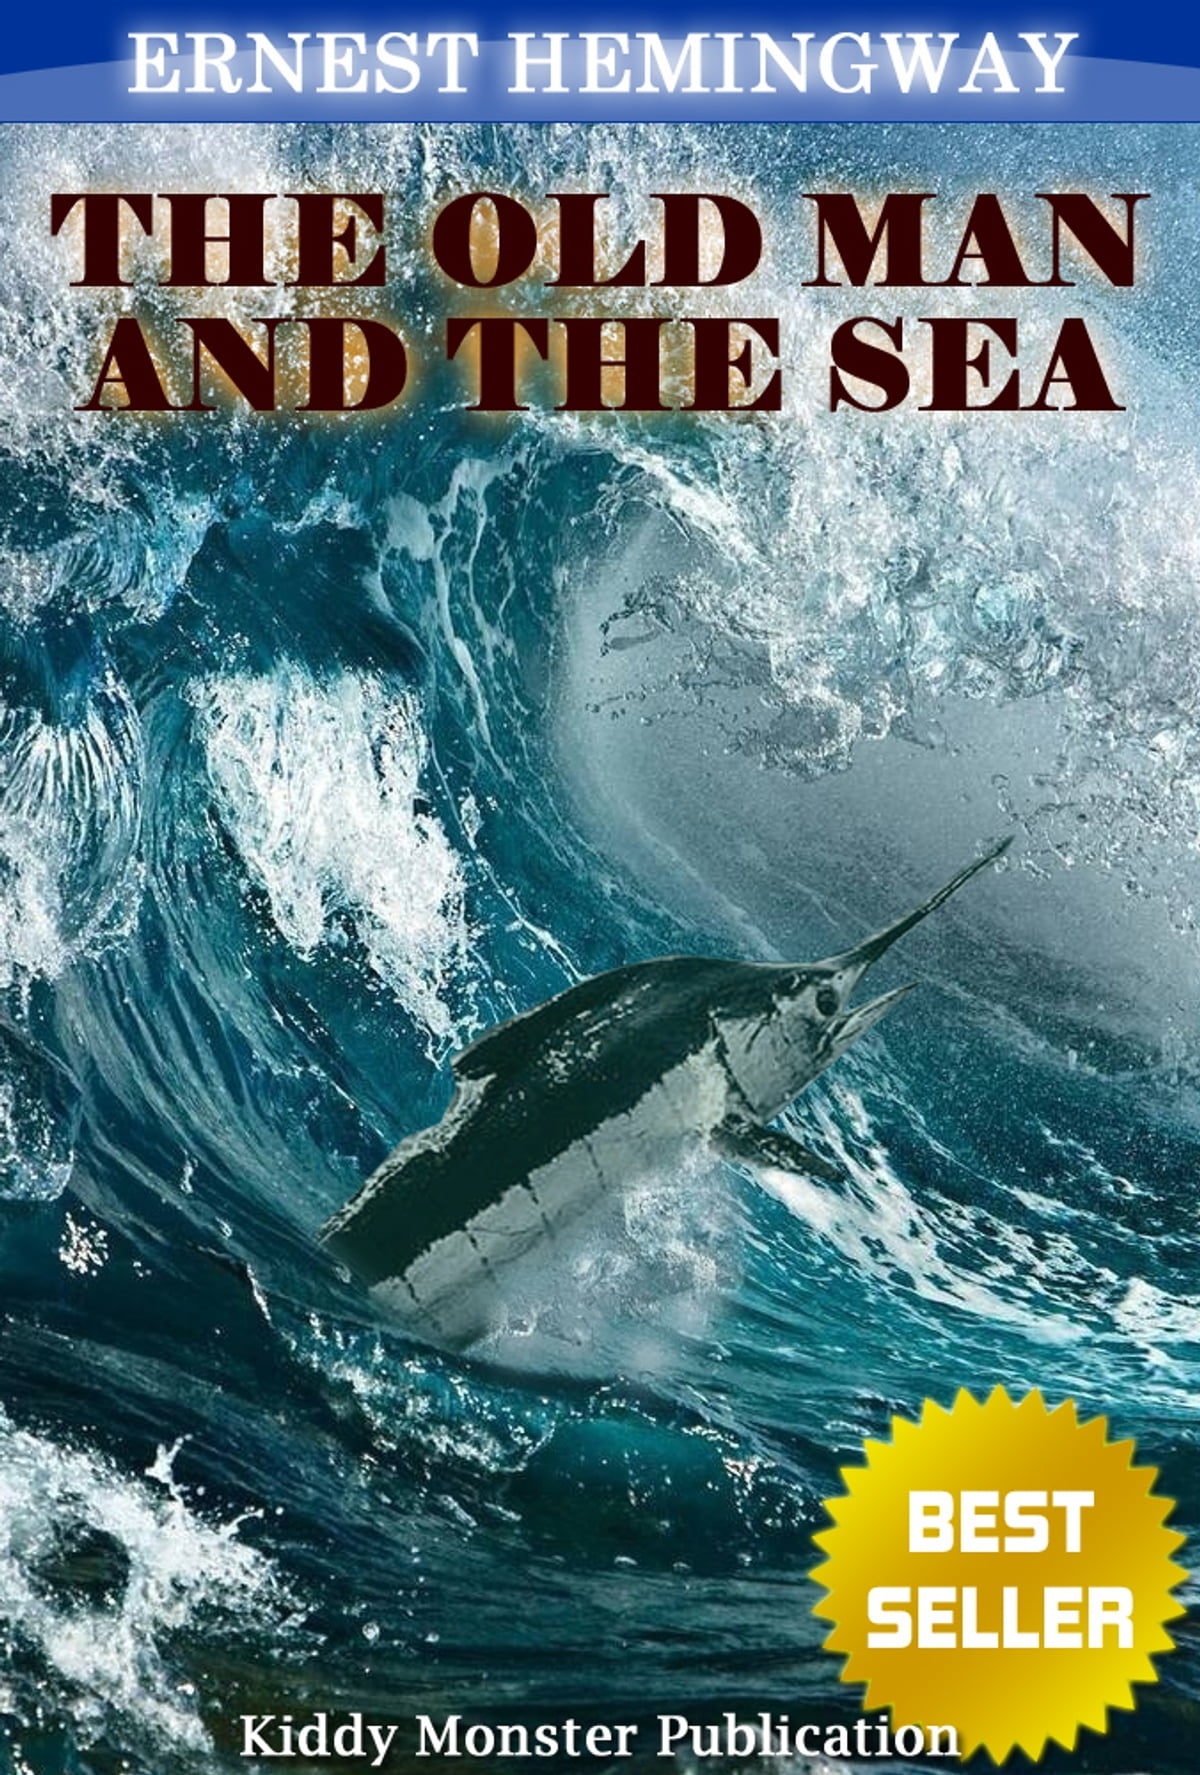 the old man and the sea مترجم pdf